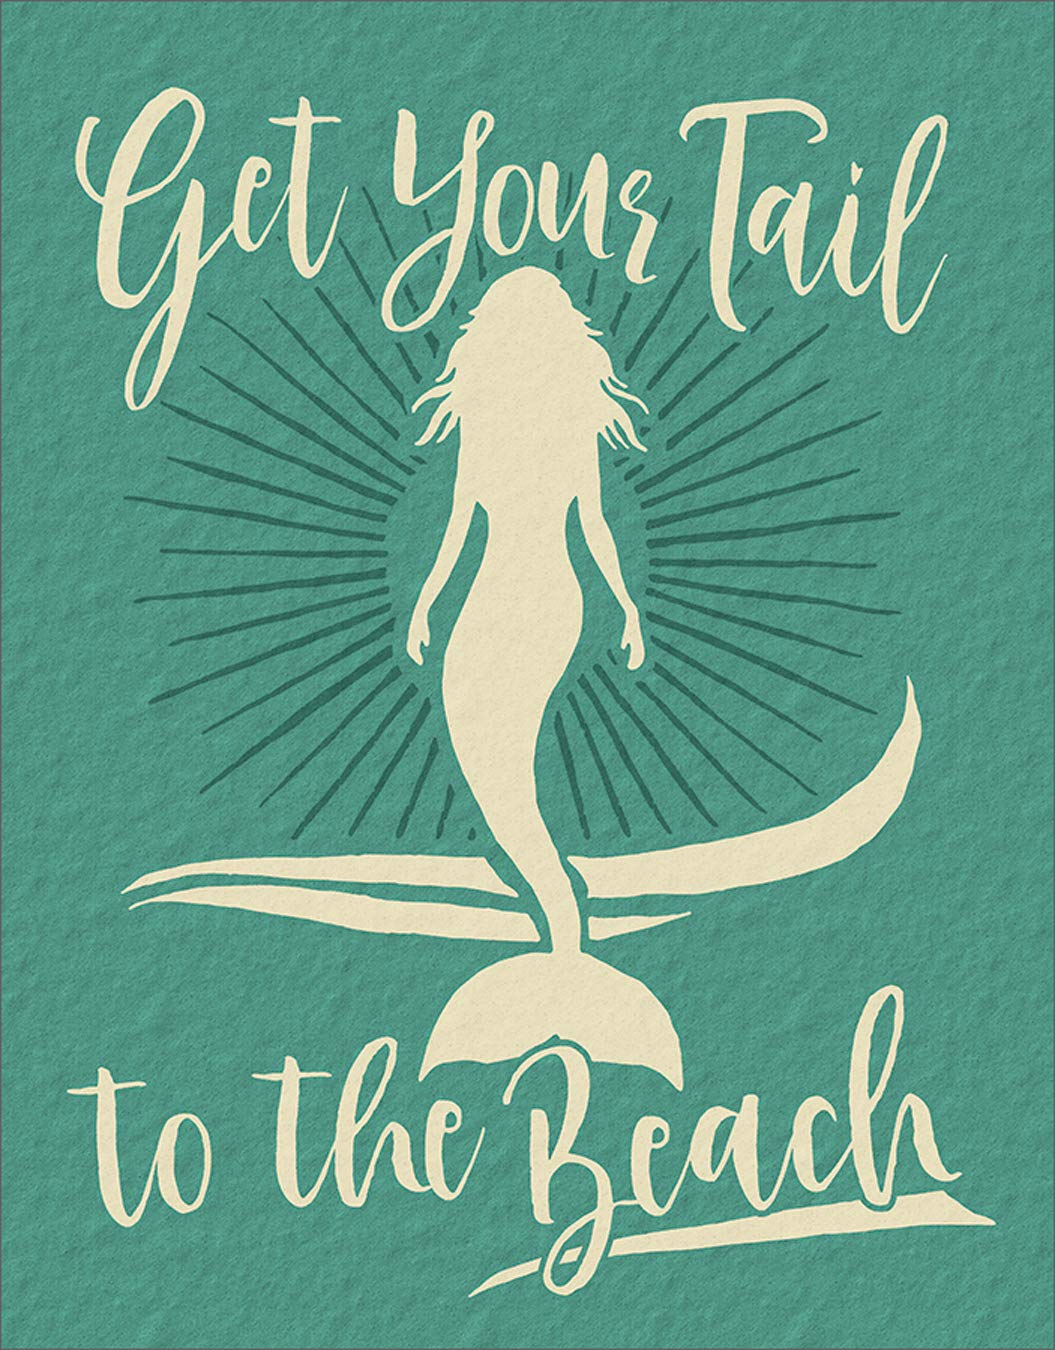 """Desperate Enterprises Get Your Tail to The Beach - Mermaid Tin Sign, 12.5"""" W x 16"""" H"""